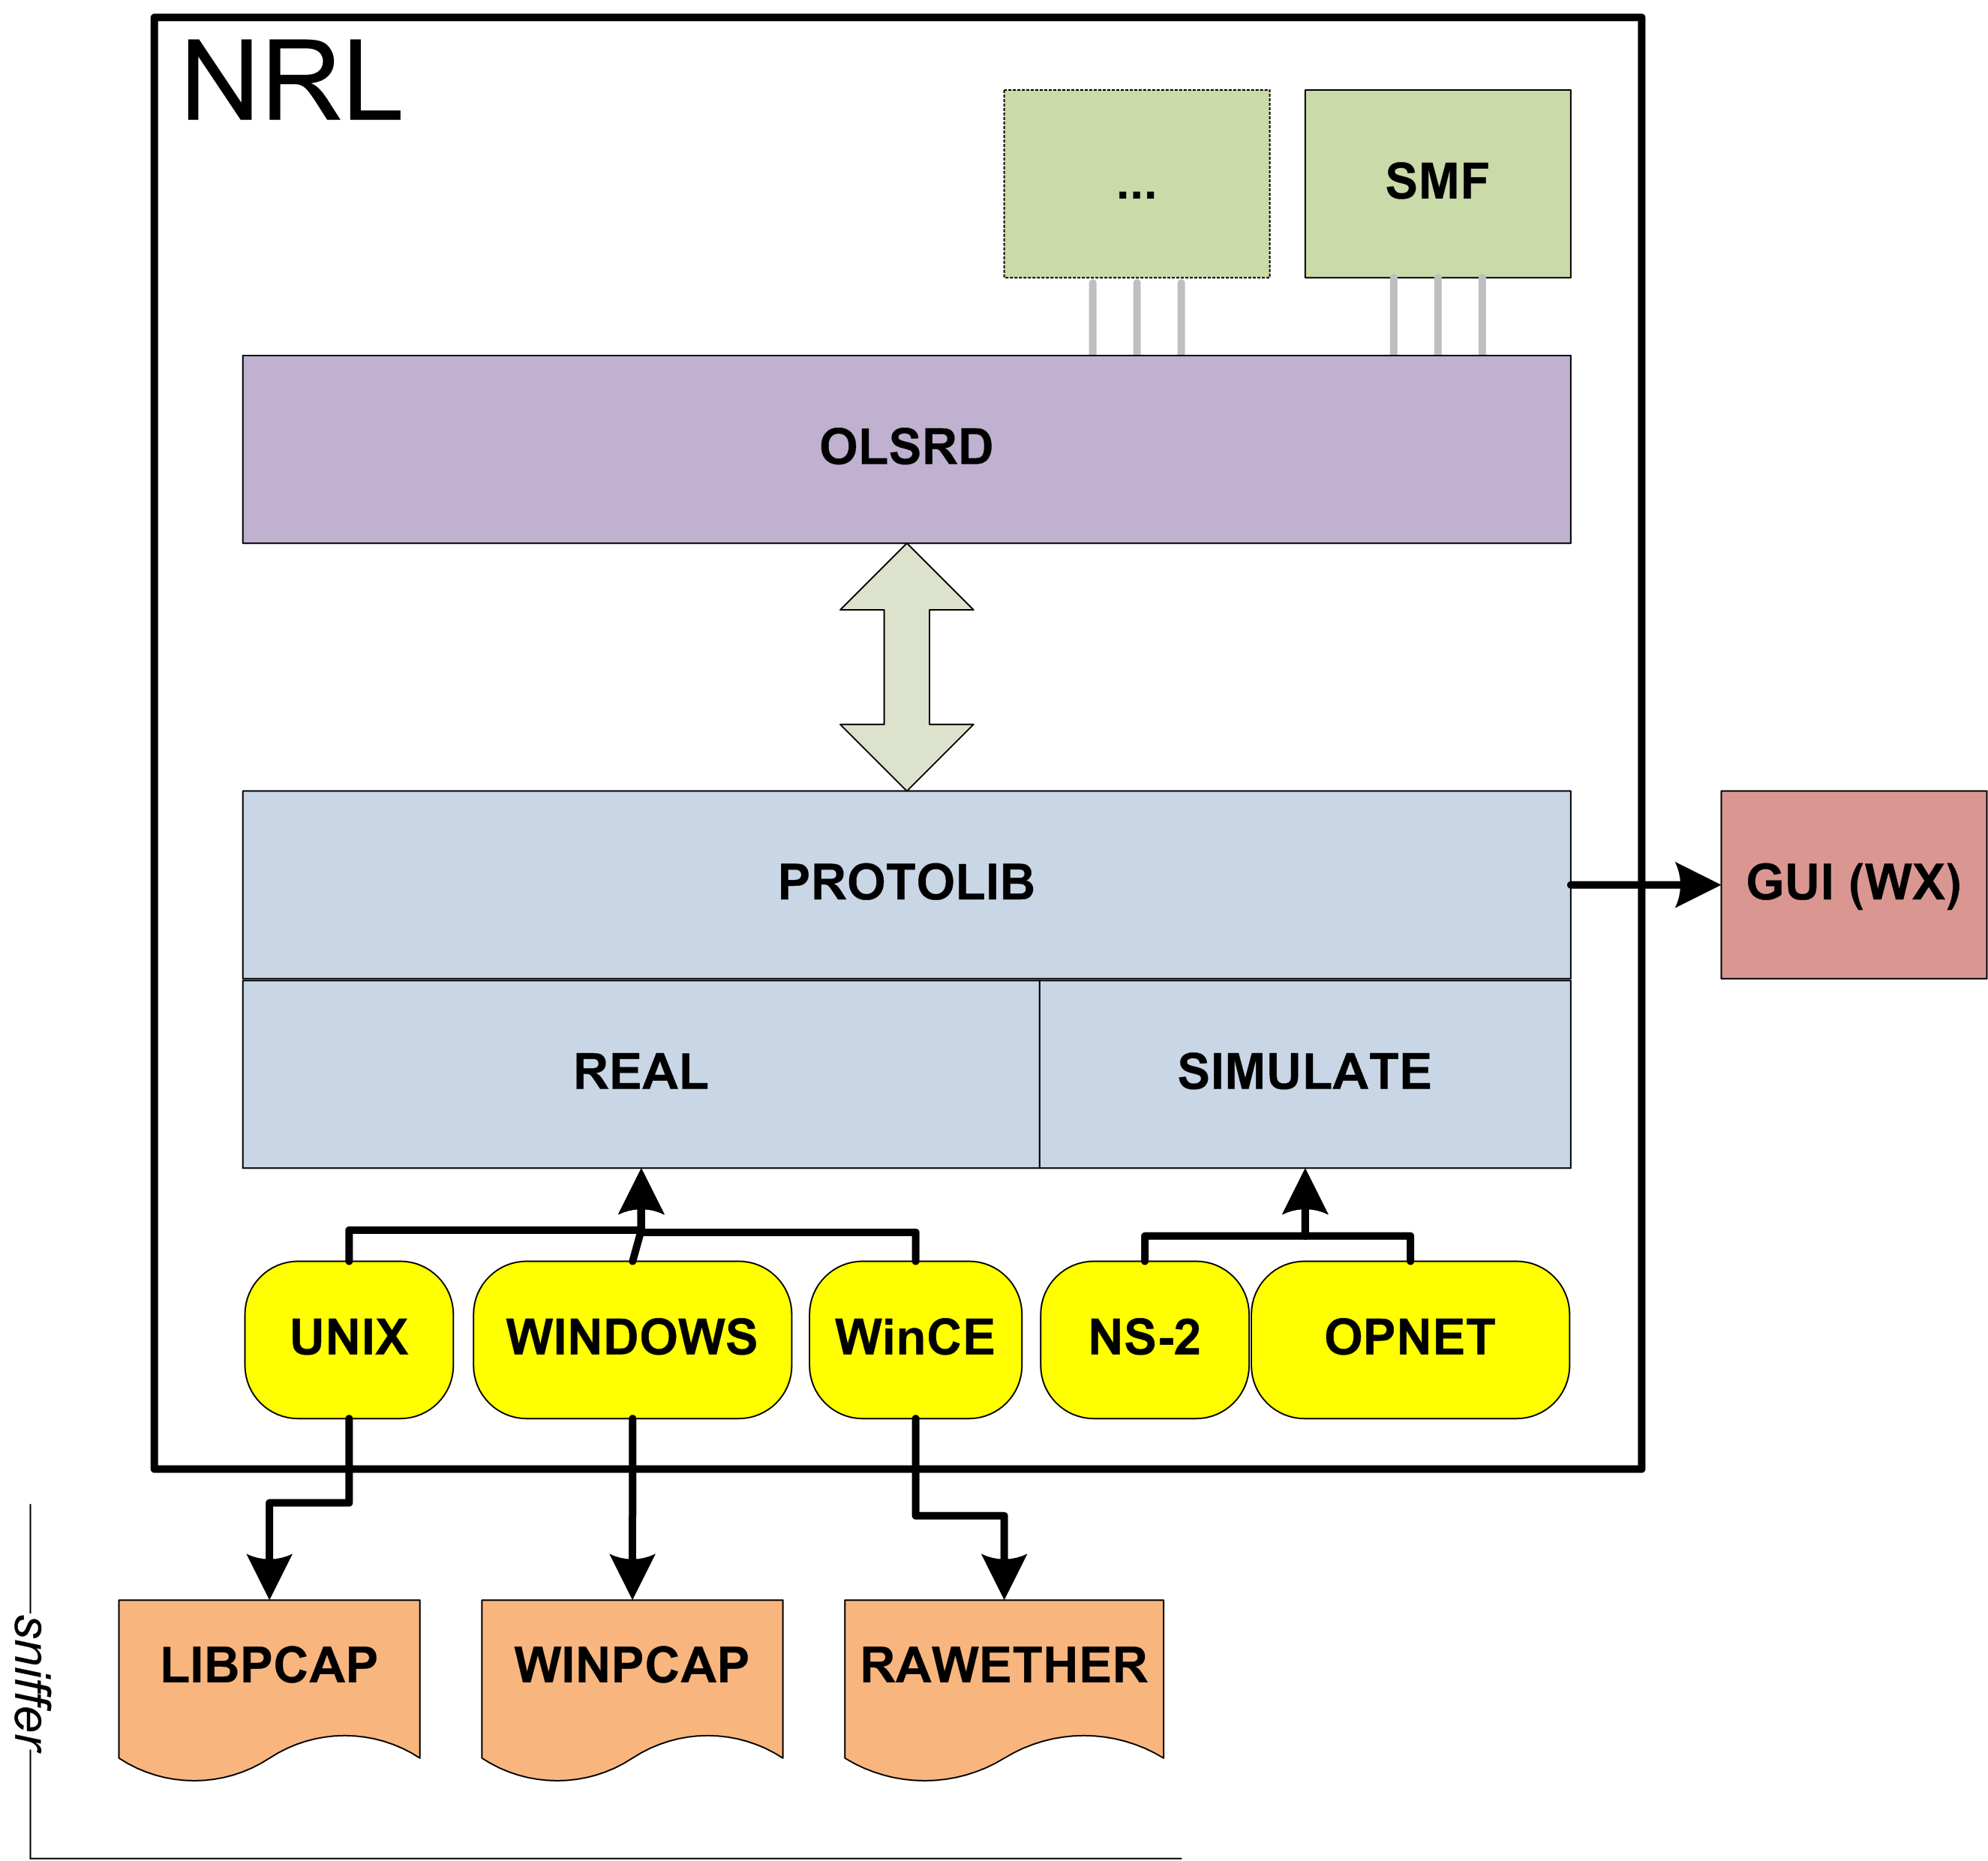 4.2 ProtoLib 54 On top of the NRLOLSRD demon many projects can be plugged-in, such as the Simple Multicast Forwarding (SMF) that provides the multicast extension to the OLSR protocol.